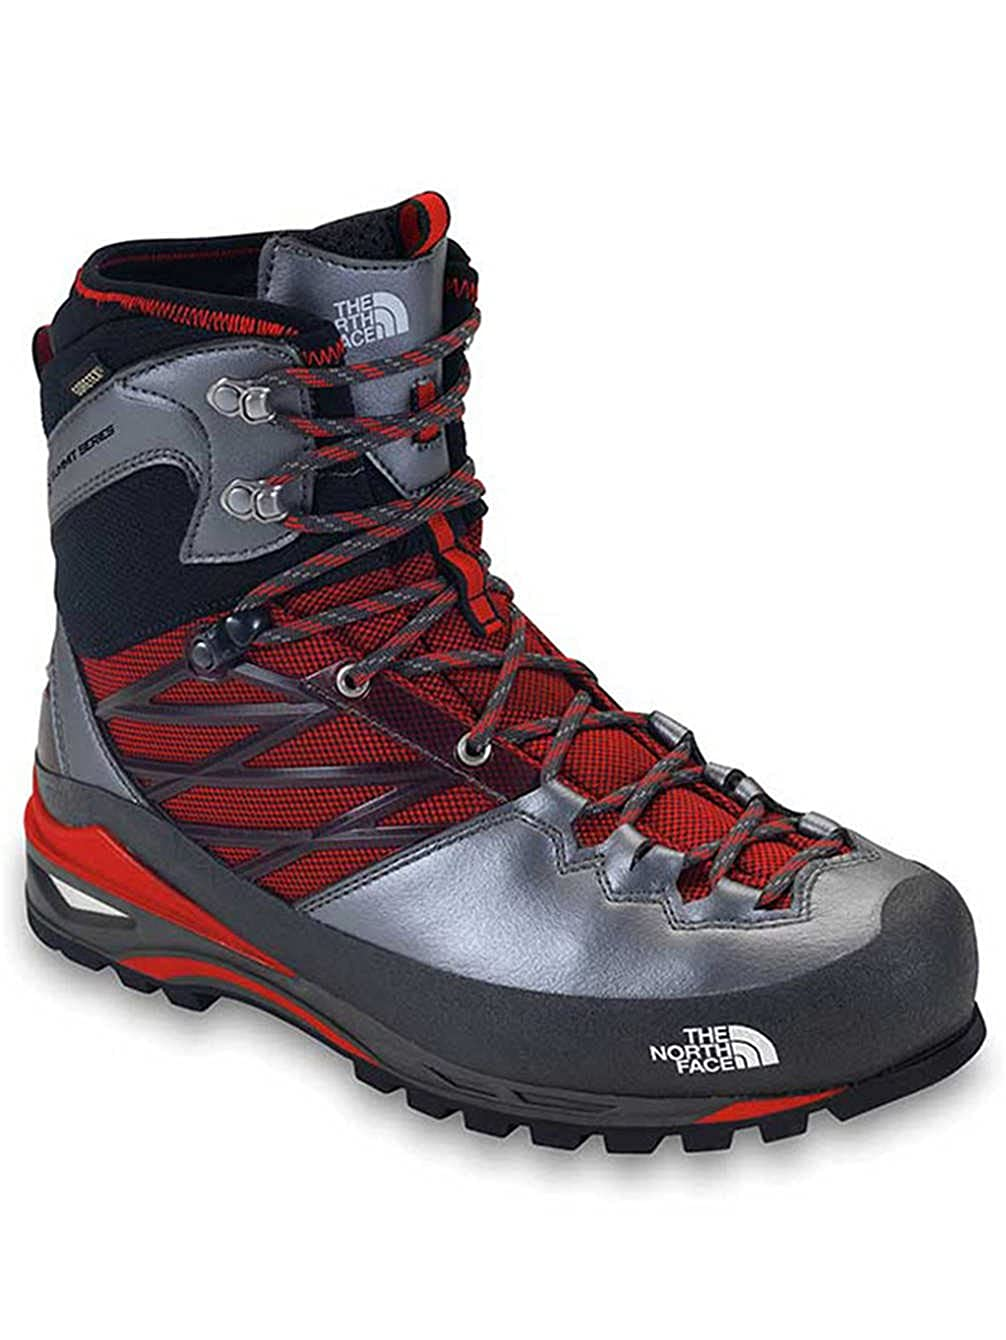 99ebd6a67 THE NORTH FACE Verto S4K GTX Boot - Men's TNF Black/TNF Red, 8.5 ...